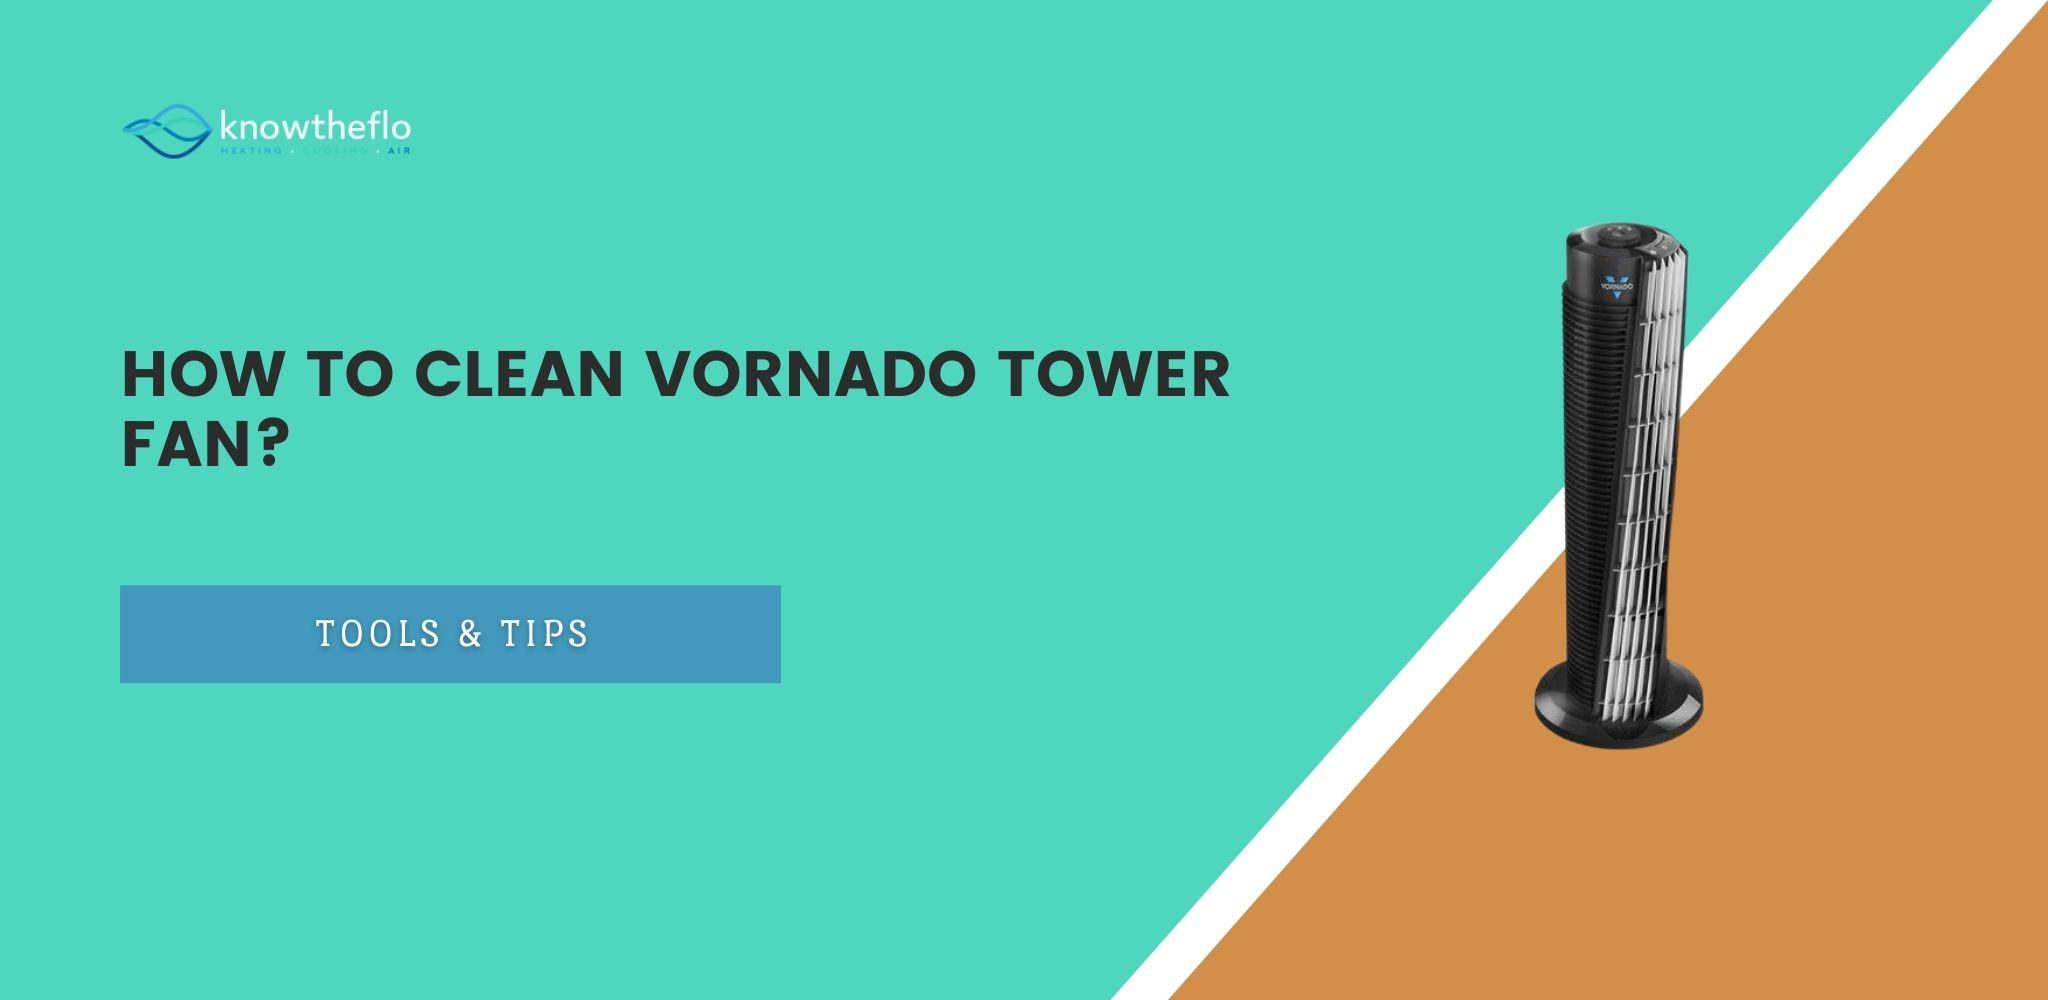 how to clean vornado tower fan